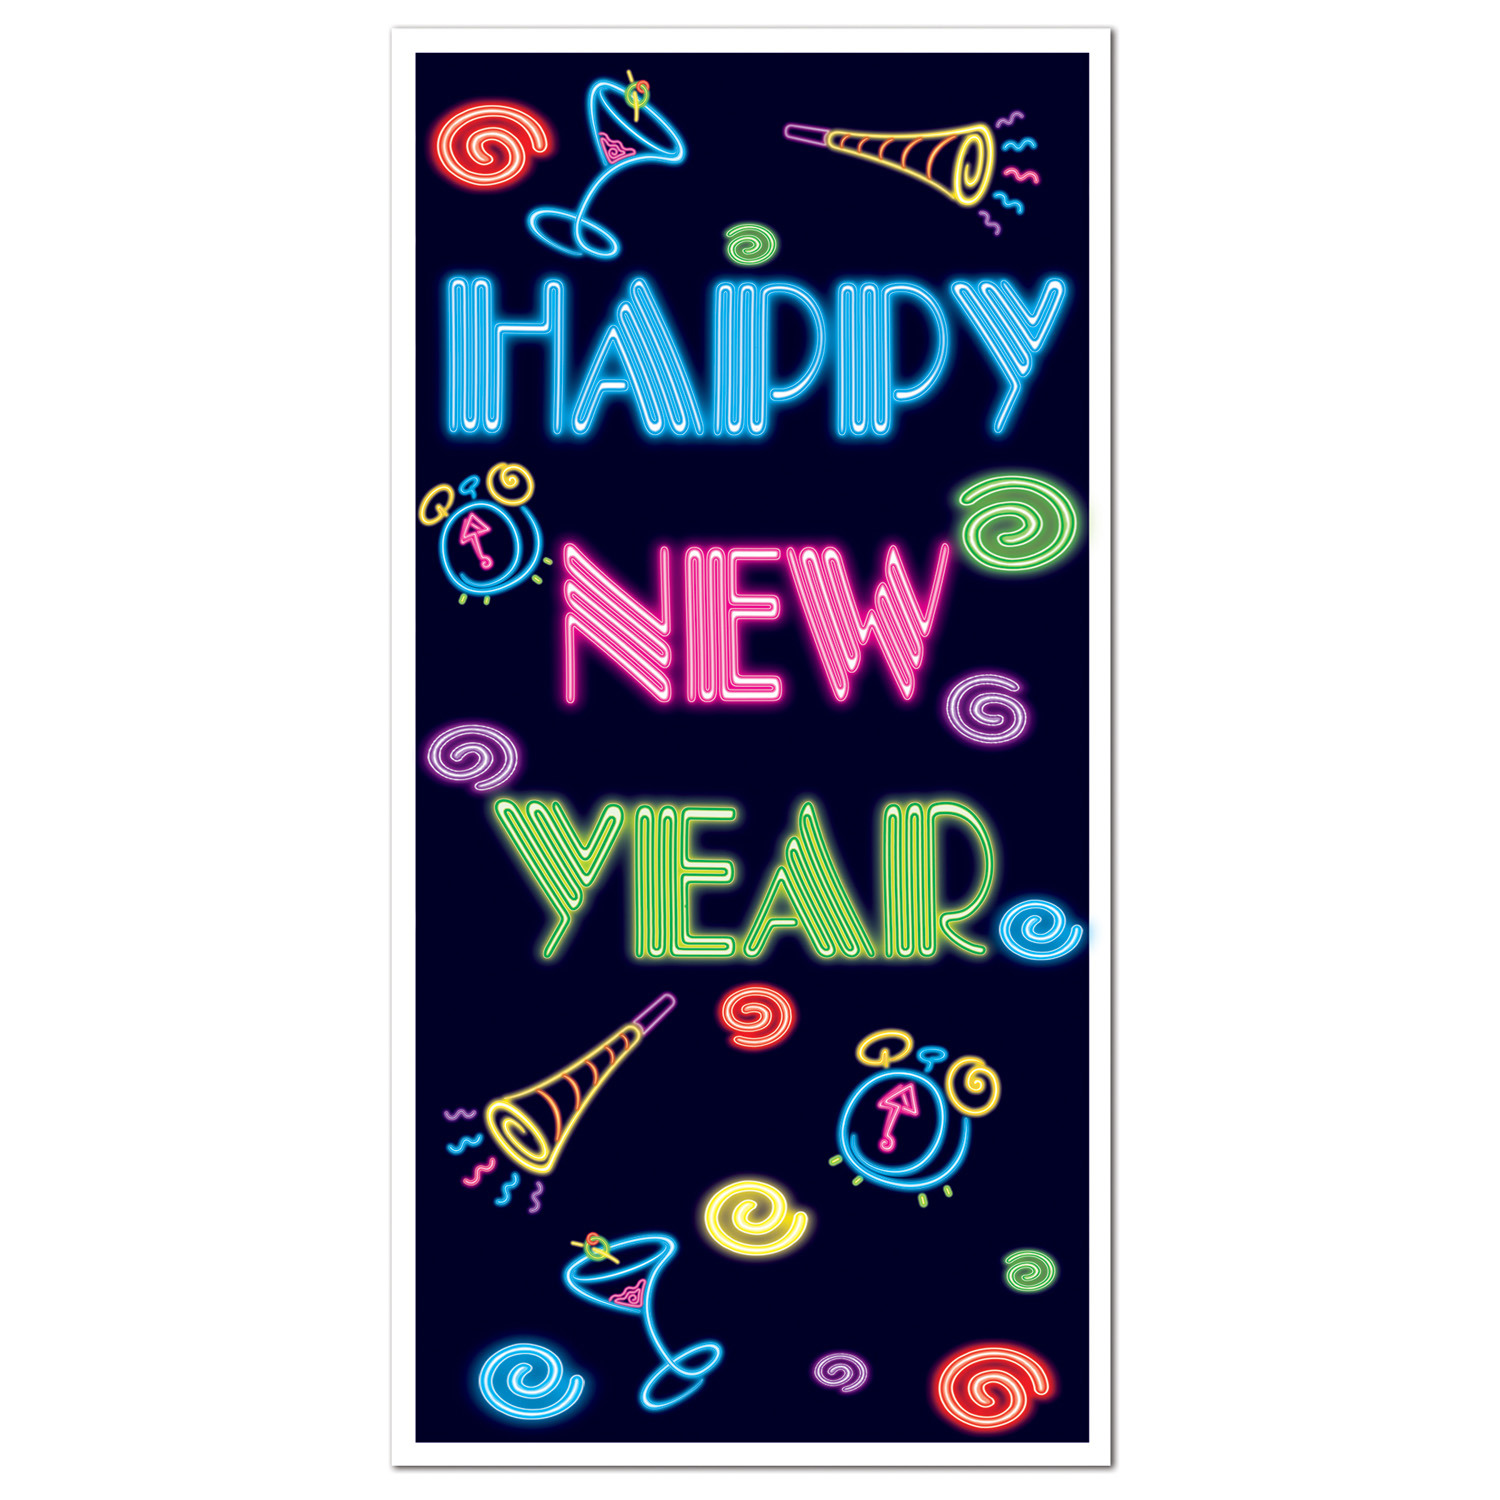 Happy New Year Door Cover (Pack of 12) Door cover, Happy New Year, Decorative cover, Door, Neon, HNY, Indoor/outdoor, New Years Eve, Glow in the dark, Multi-color, Party favors, Wholesale party supplies, Inexpensive party goods, Cheap, Bulk